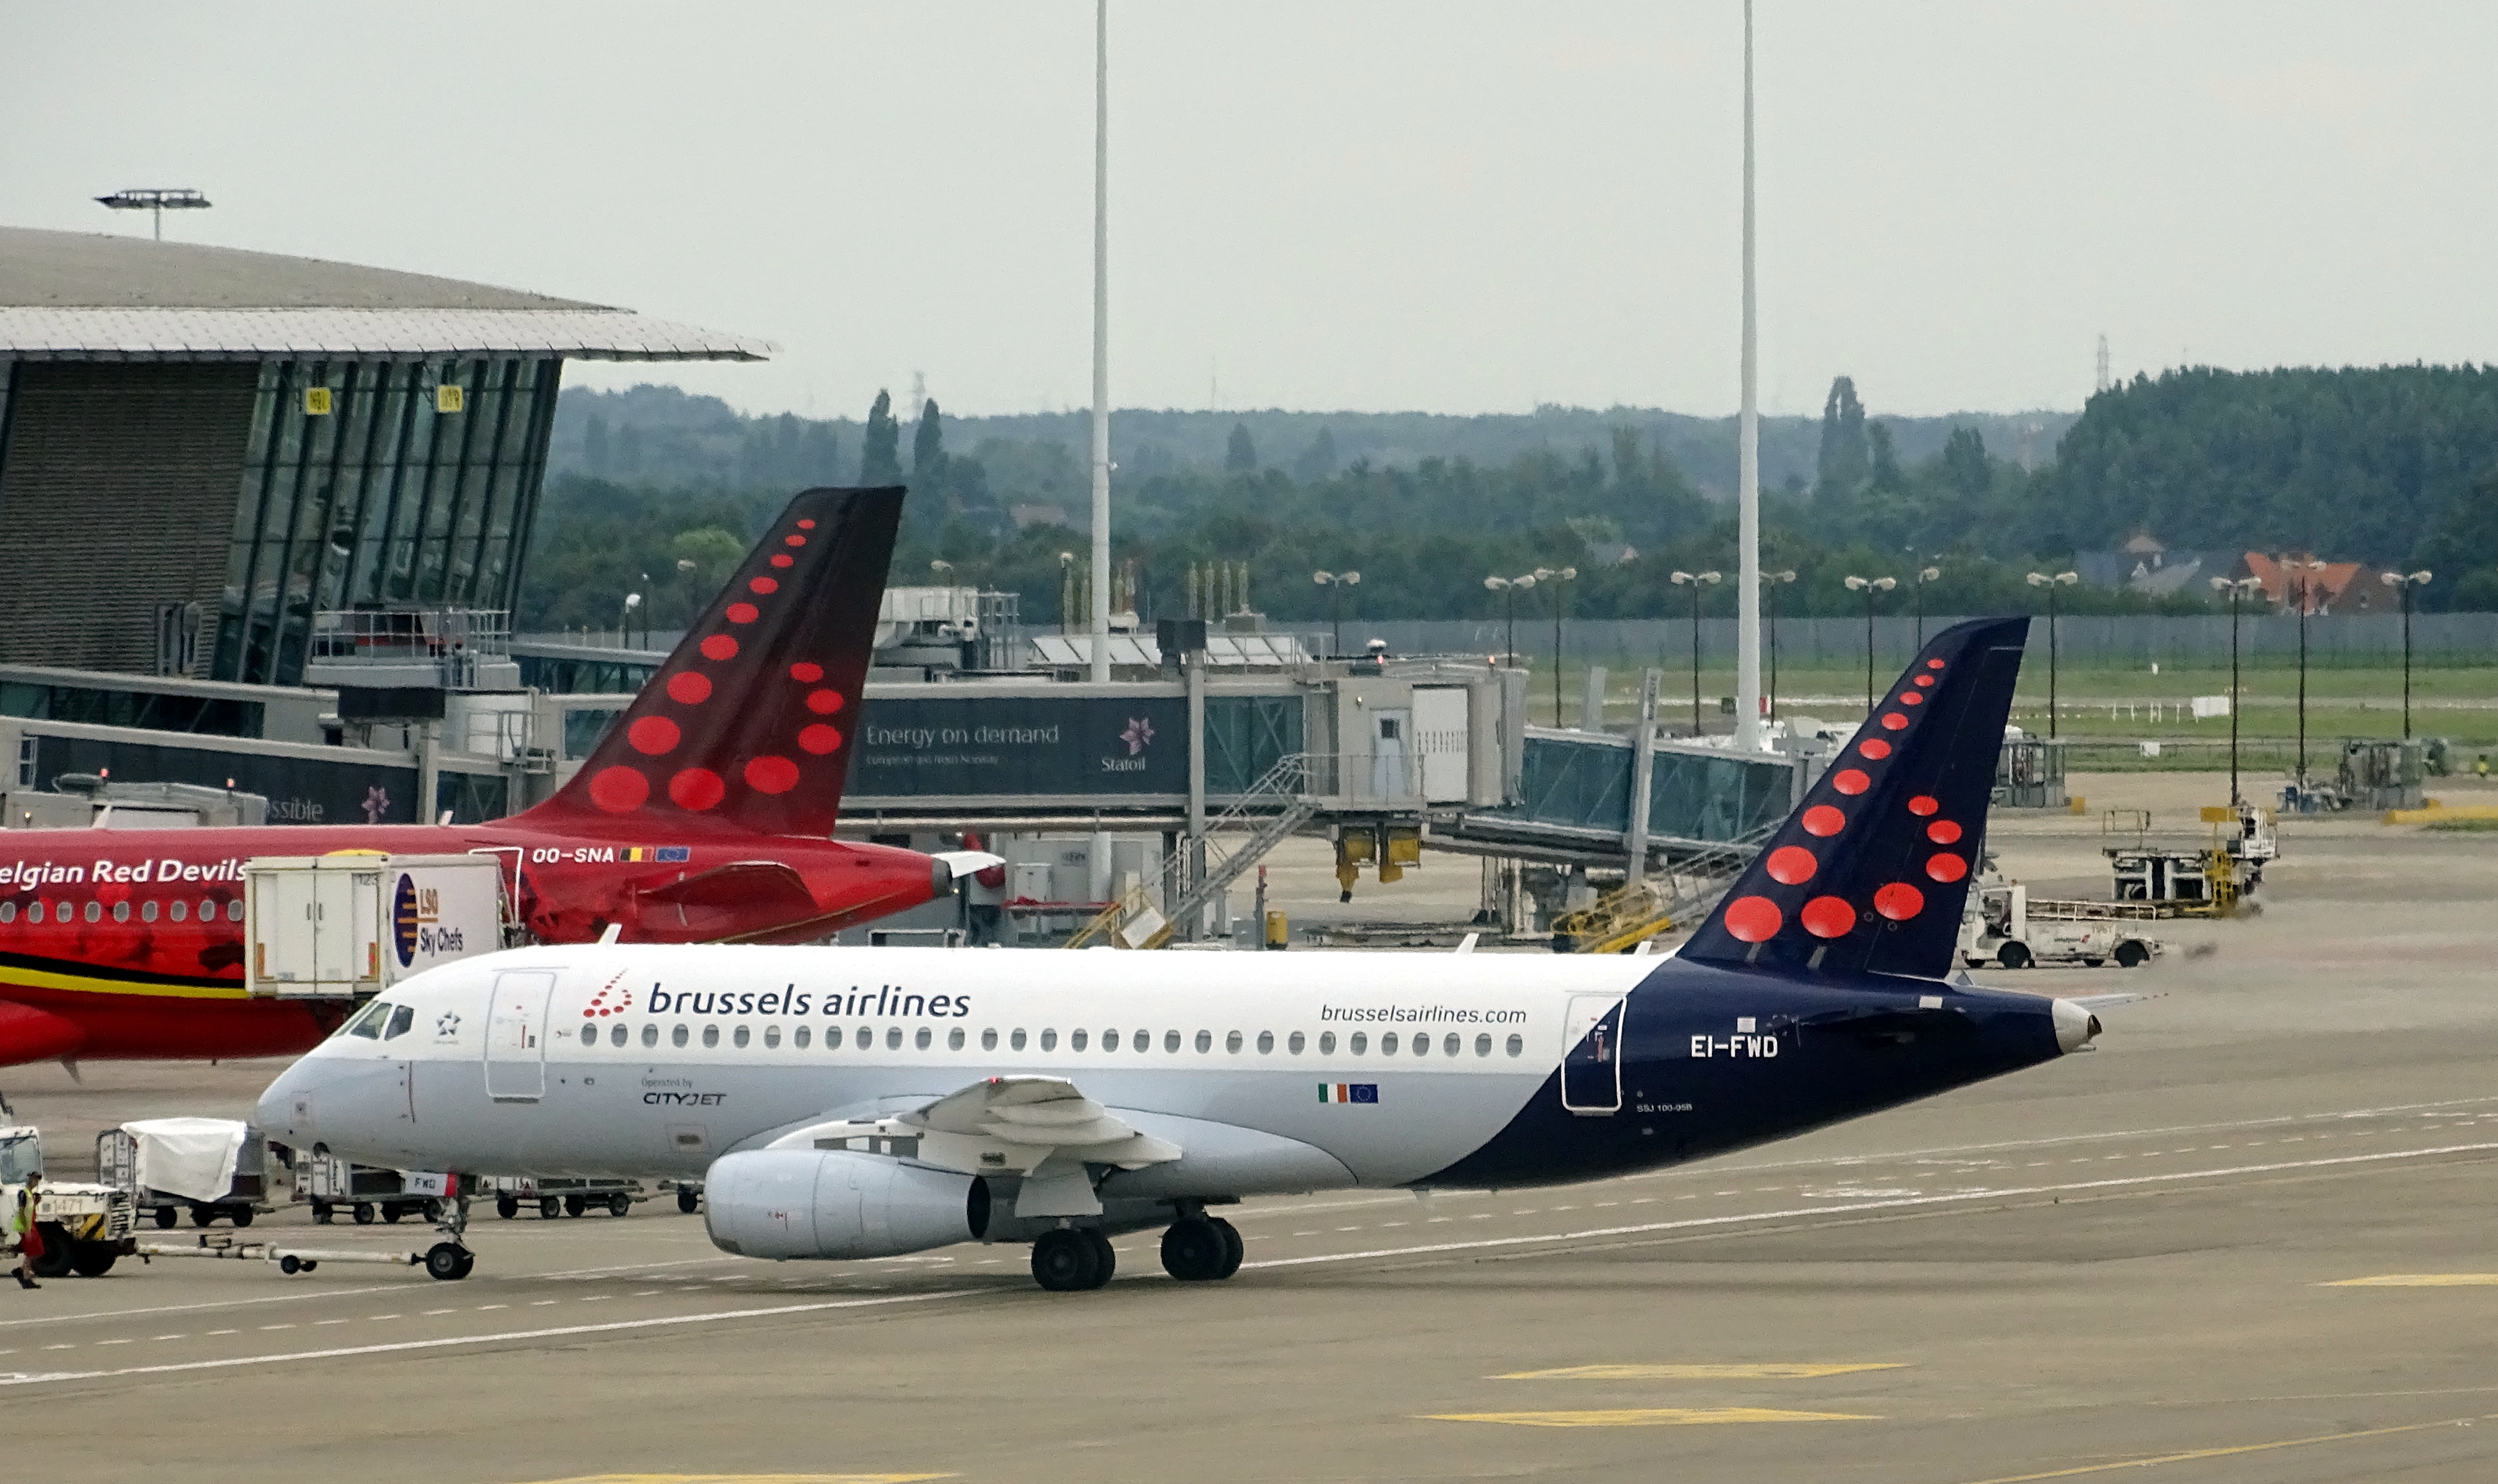 File:Brussels Brussels Airlines Sukhoi Superjet 100-95B EI-FWD.jpg -  Wikimedia Commons